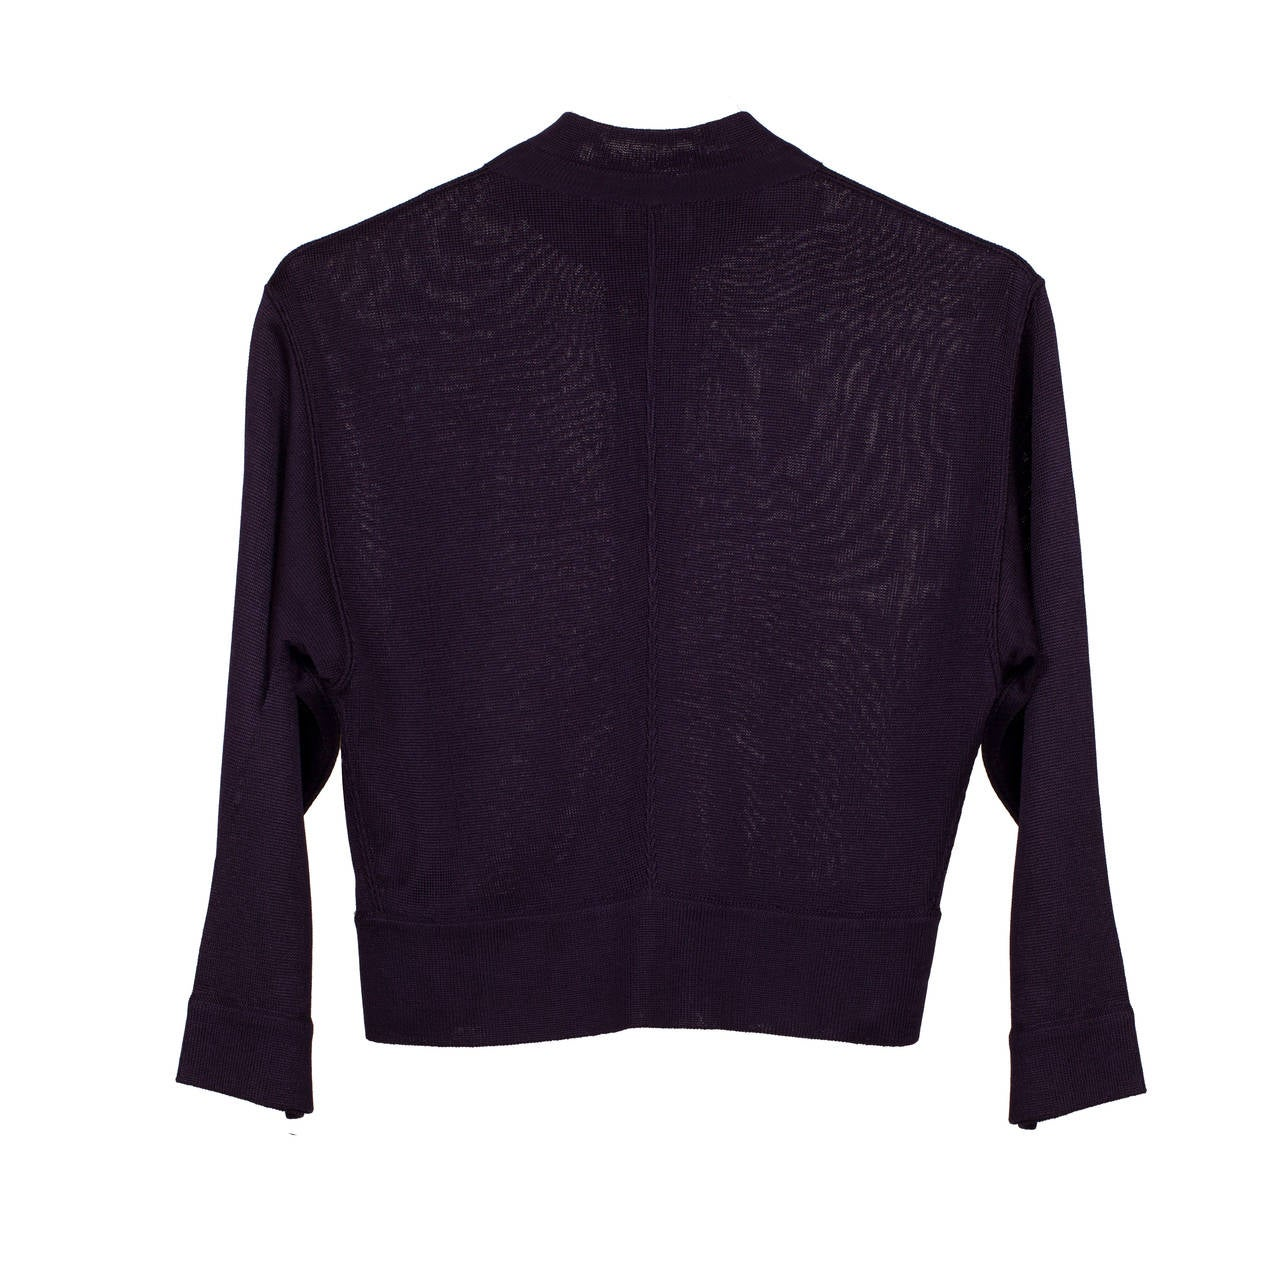 Azzedine Alaia aubergine cardigan with center front button closure, dating to the early 1980's. 